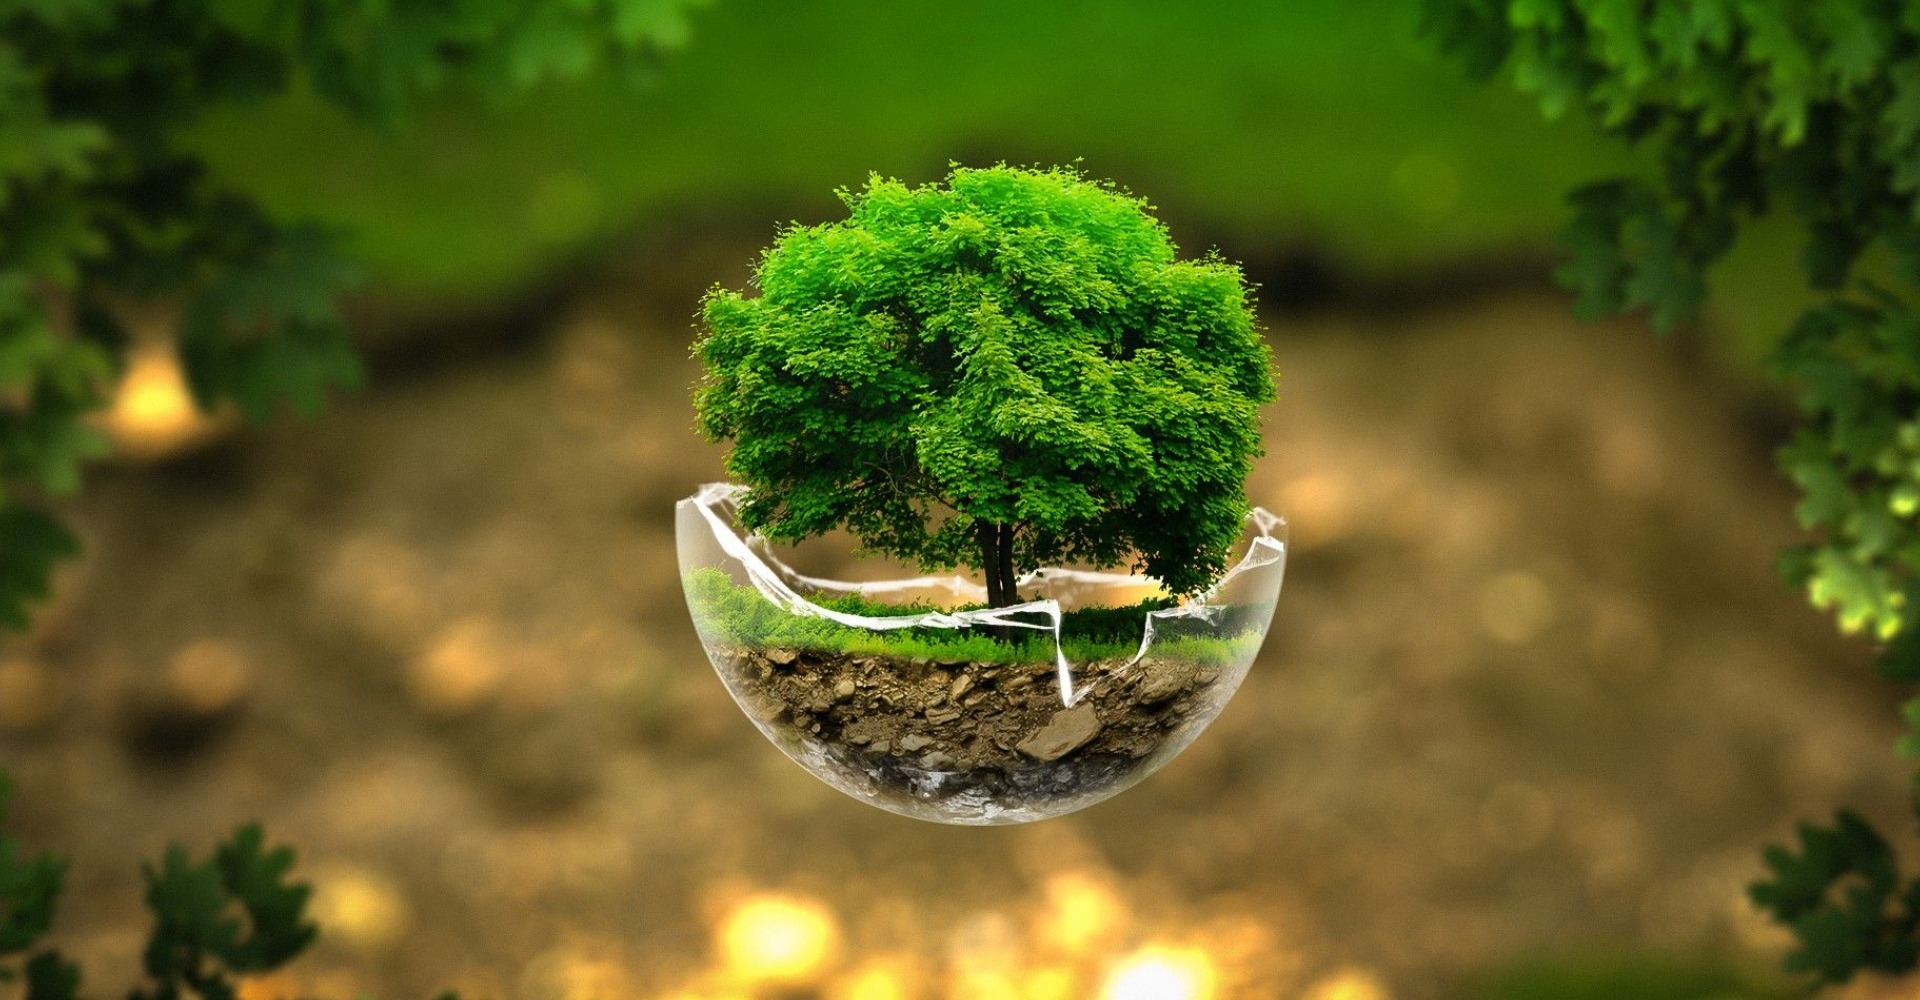 save_earth_plant_trees_broken_beautiful_3d_ultra_3840x2160_hd-wallpaper-1874626